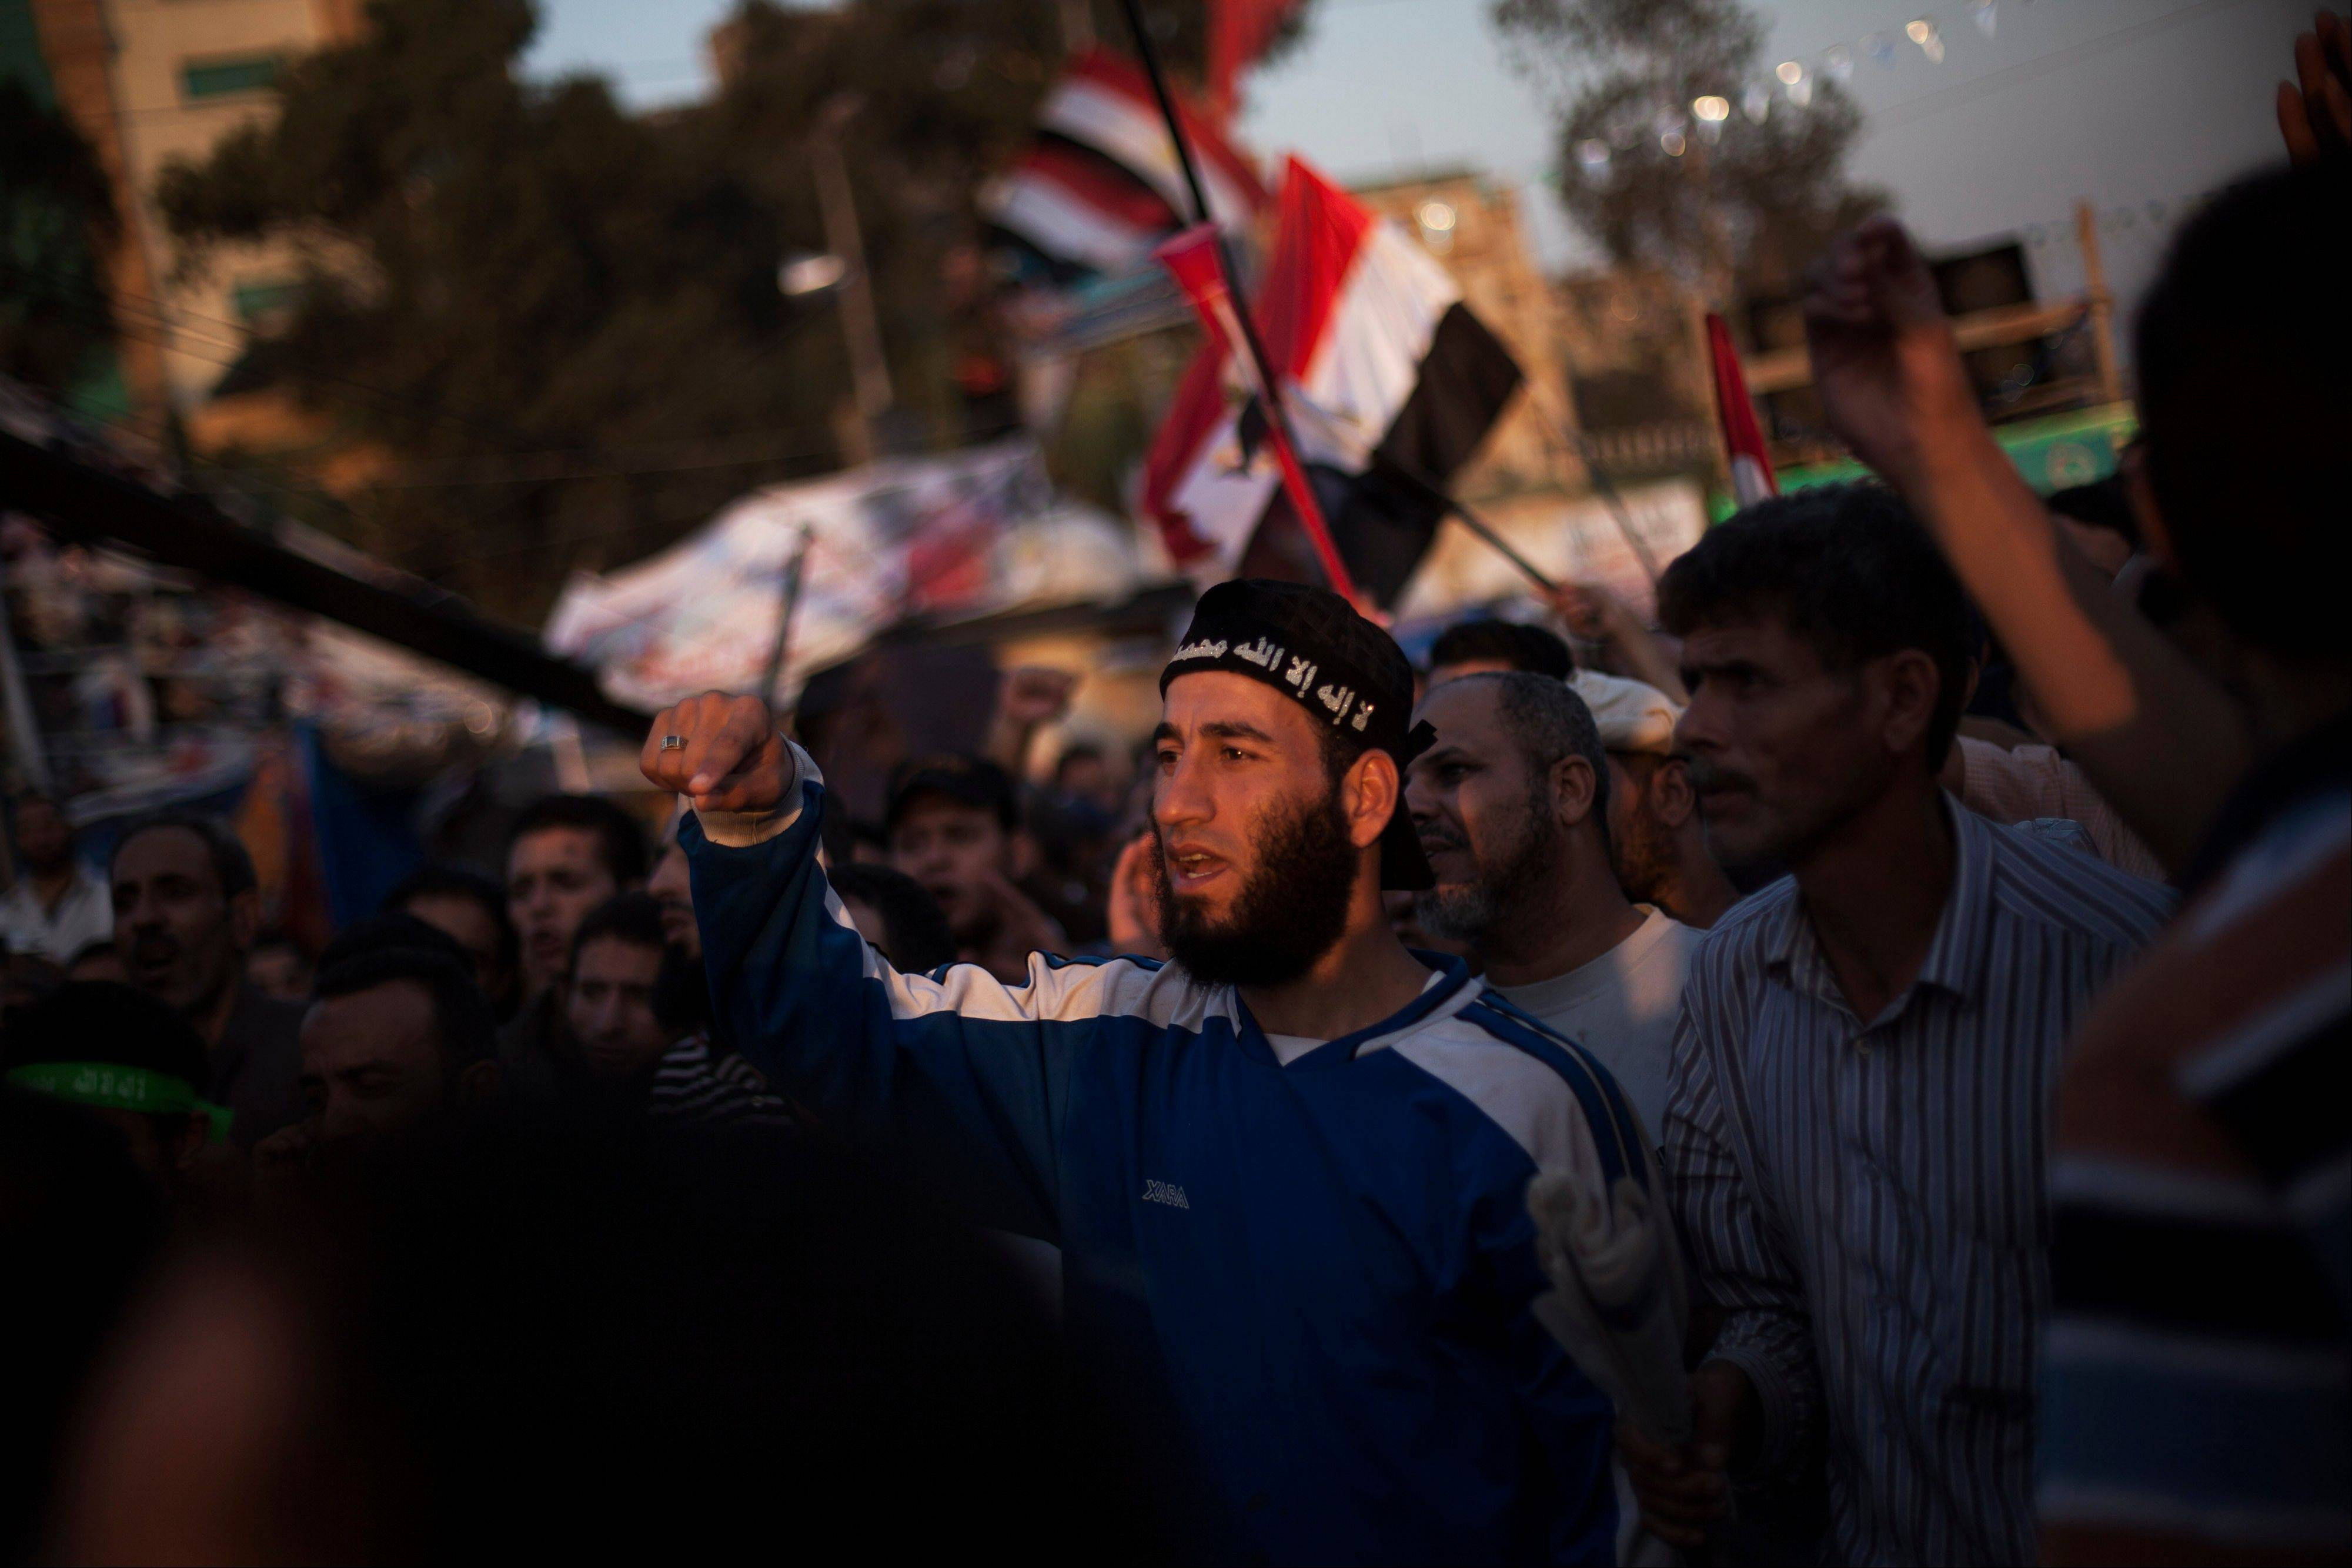 Supporters of Egypt�s ousted President Mohammed Morsi chant slogans during their sit-in around Rabaa Al-Adawiya mosque, which is fortified with multiple walls of bricks, tires, metal barricades and sandbags, where protesters have installed their camp in Nasser City, Cairo, Egypt, on Monday.